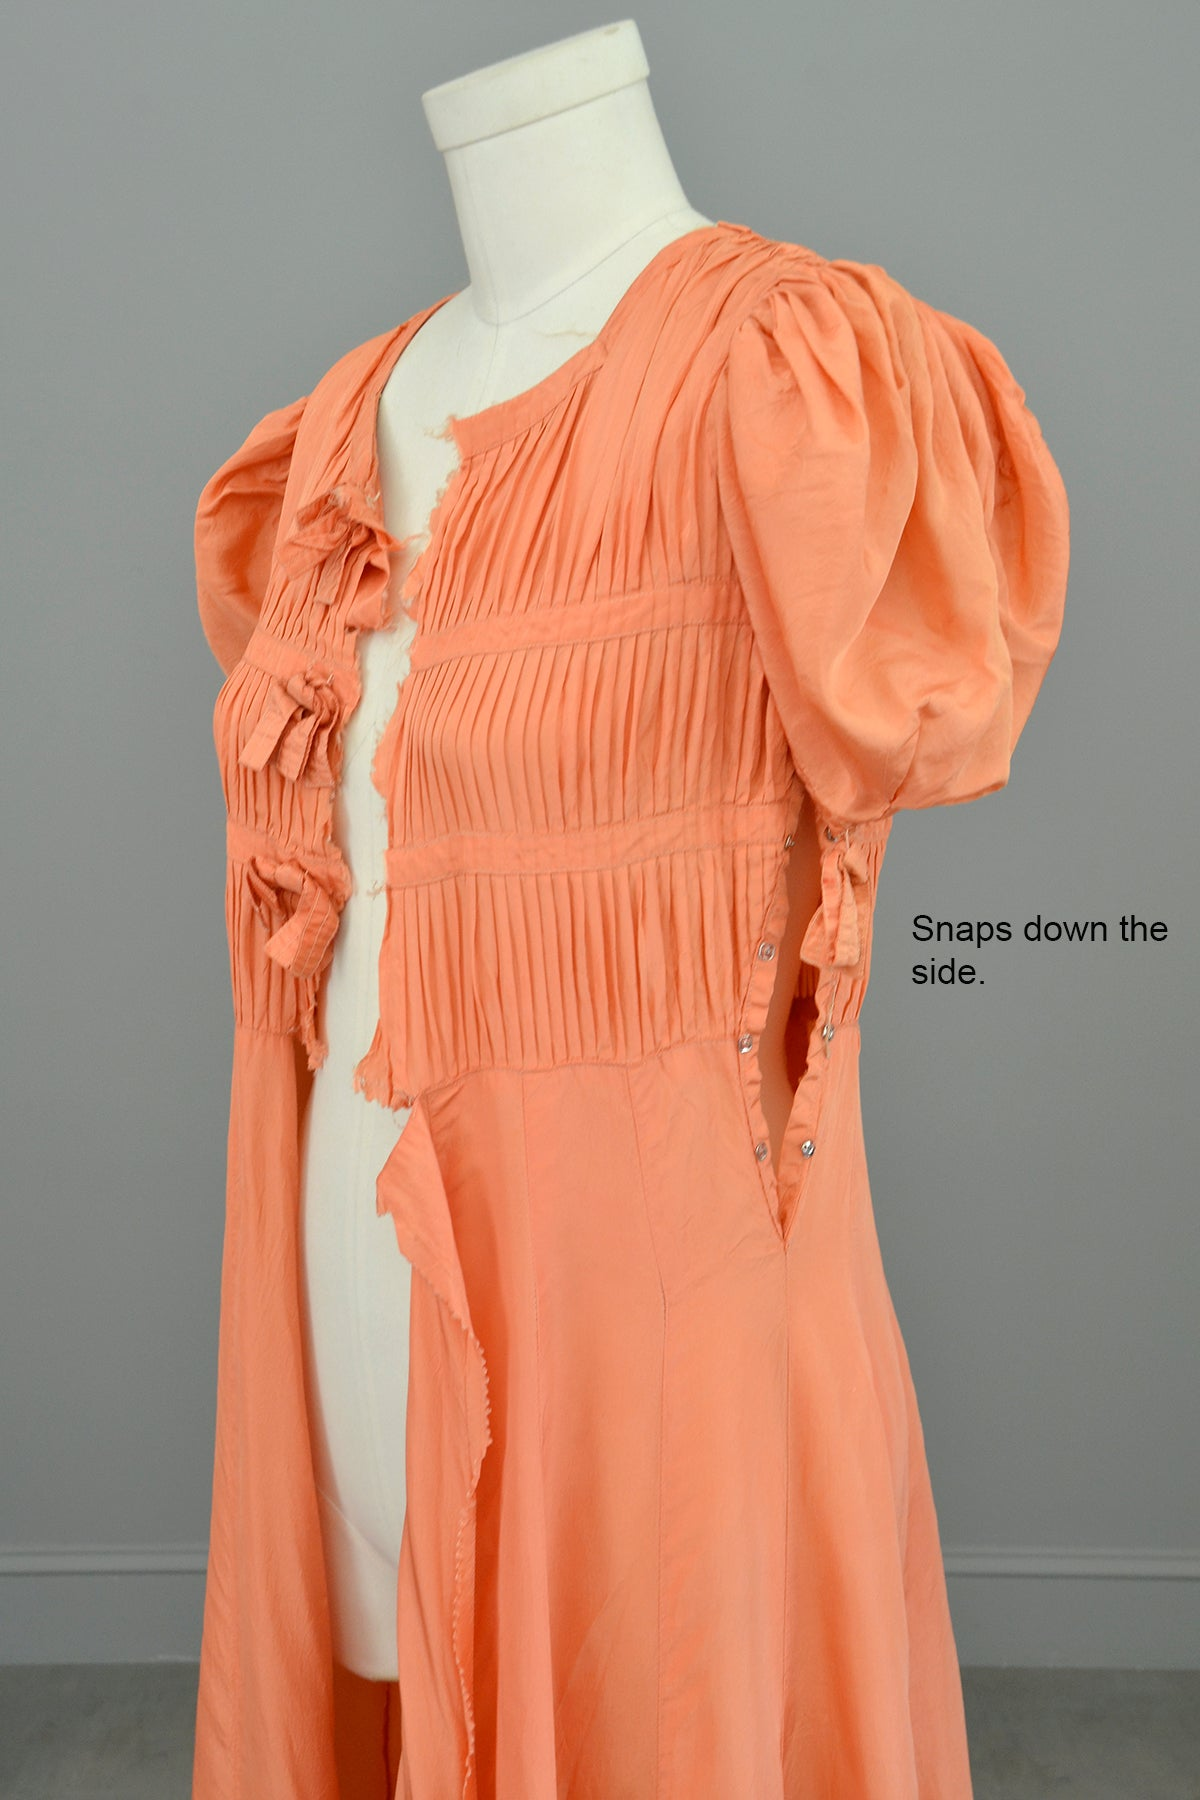 1930s Peach Gown w Pintucking and Bows Unfinished | DIY Project for Study or Finishing